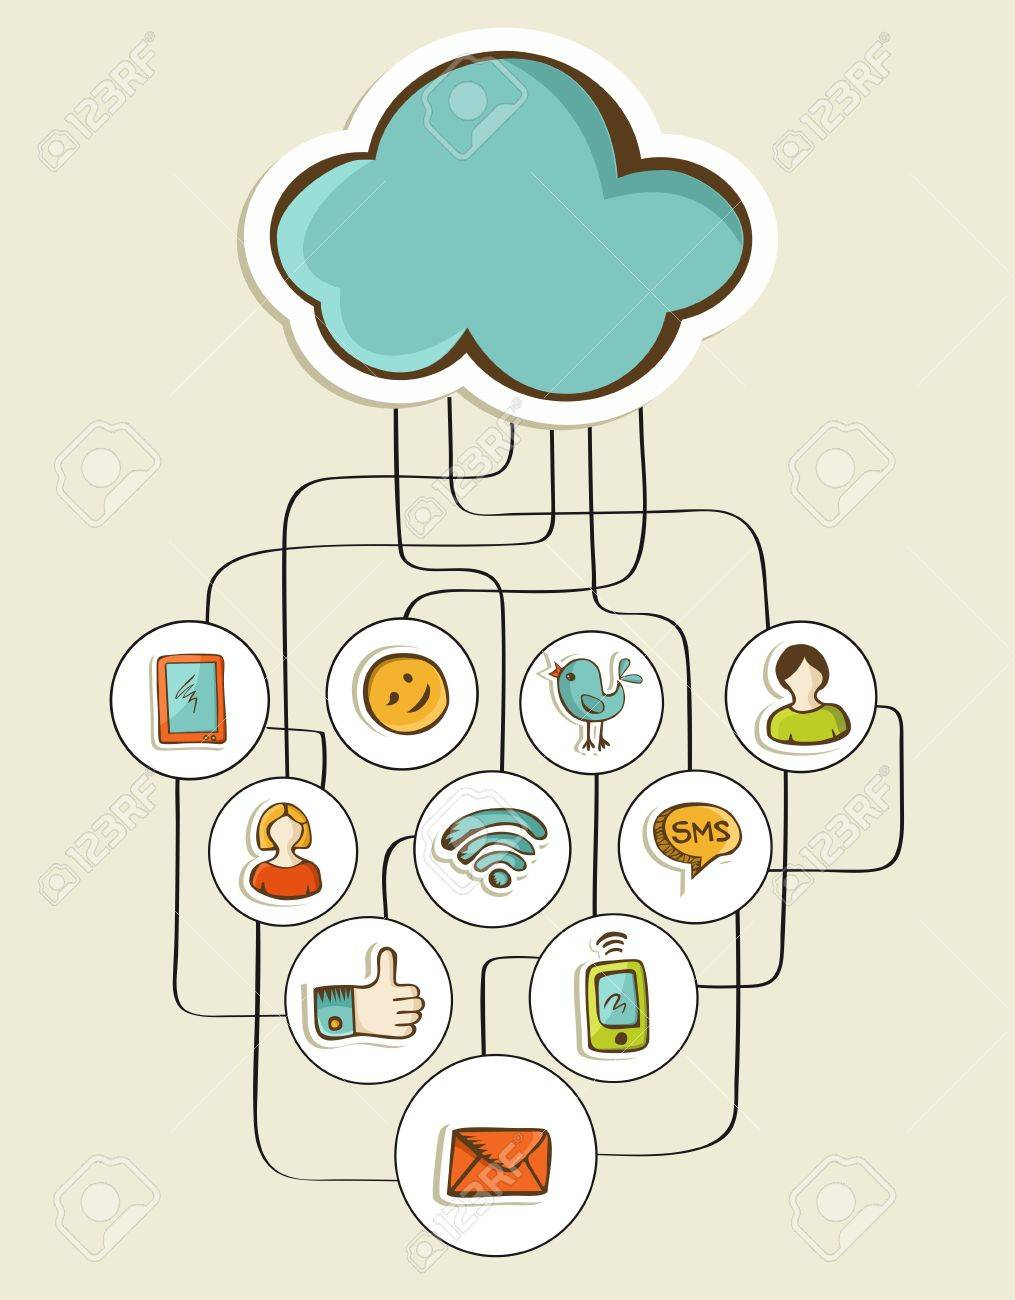 Cloud computing hand drawn social network diagram vector cloud computing hand drawn social network diagram vector illustration layered for easy manipulation and custom ccuart Image collections